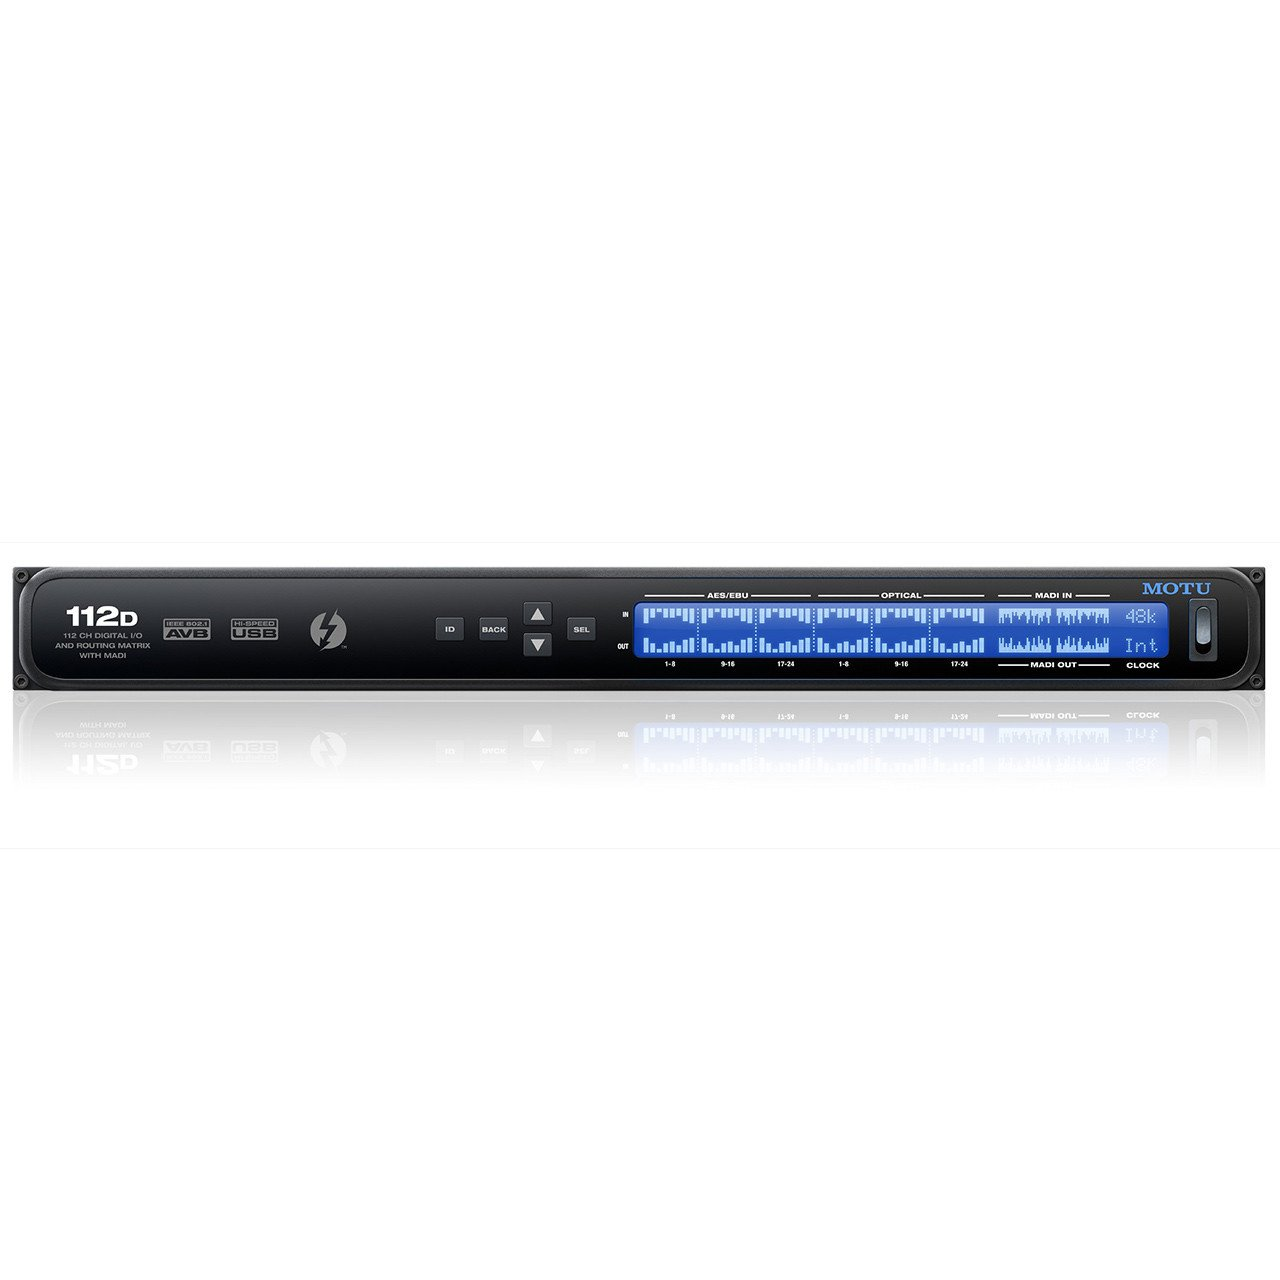 MOTU 112D Thunderbolt / AVB Ethernet / USB Audio Interface